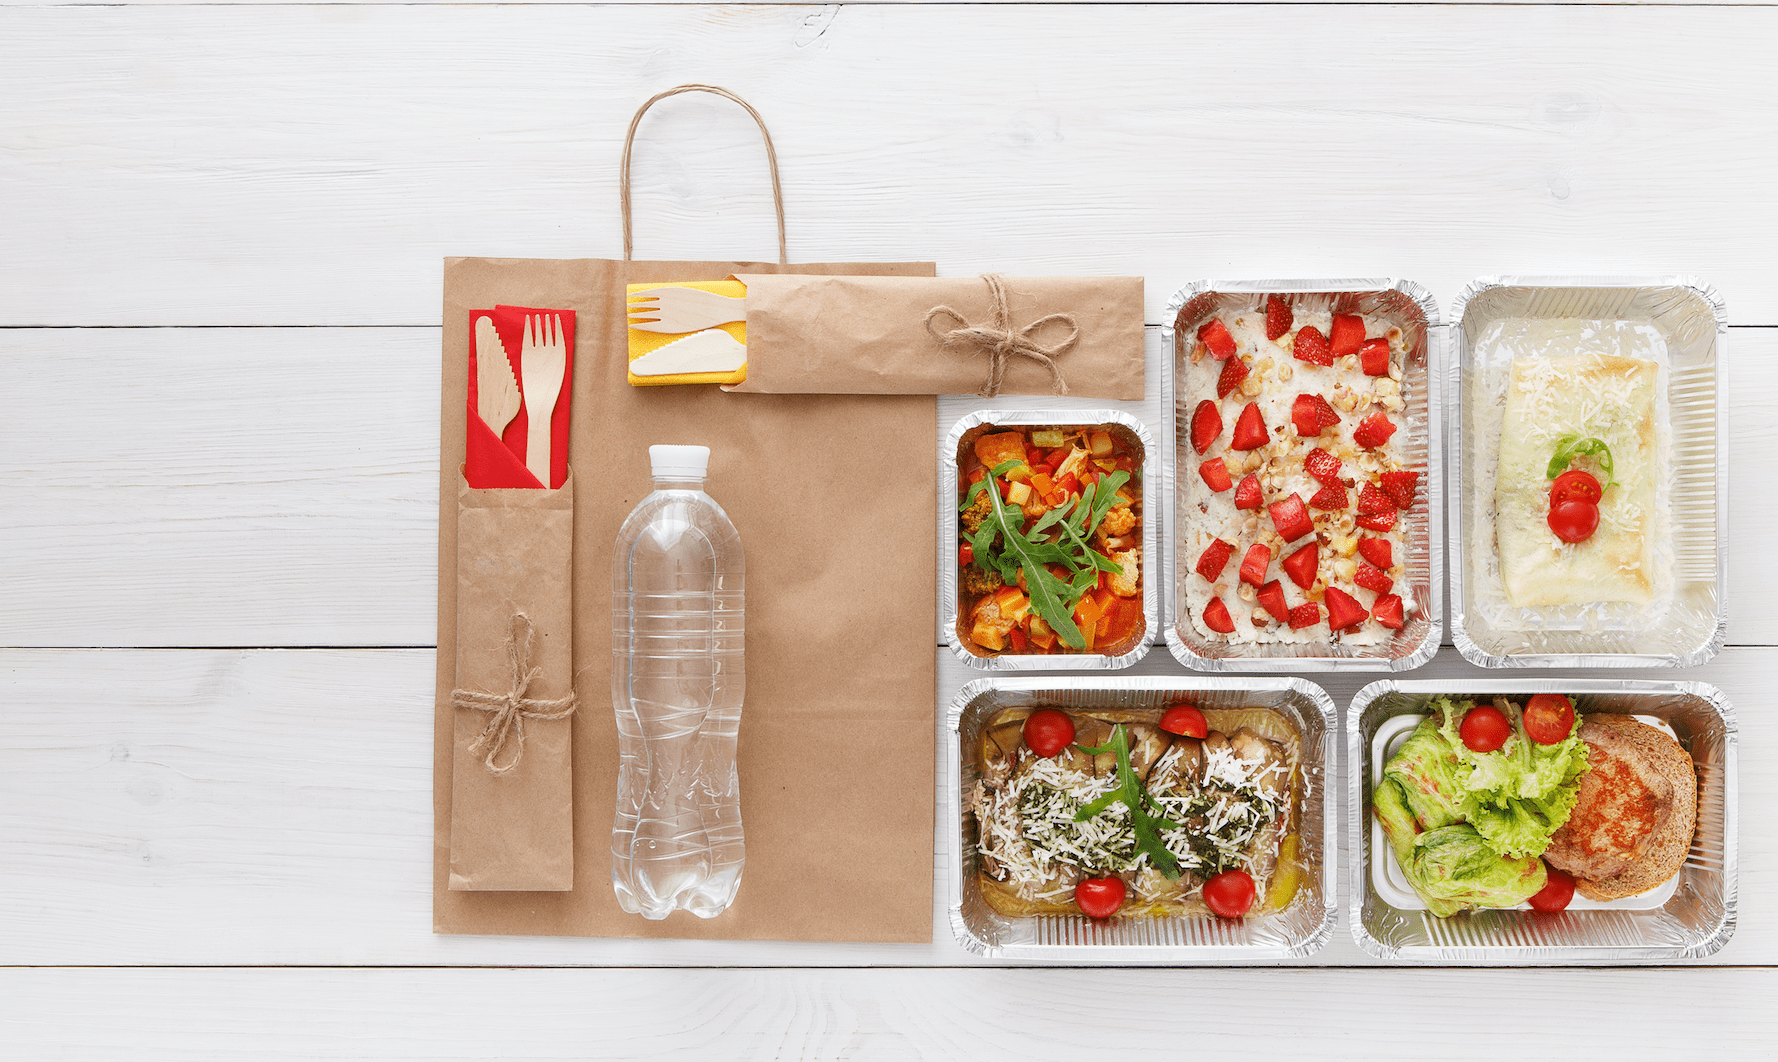 St. Louis' #1 Meal Prep Delivery Service